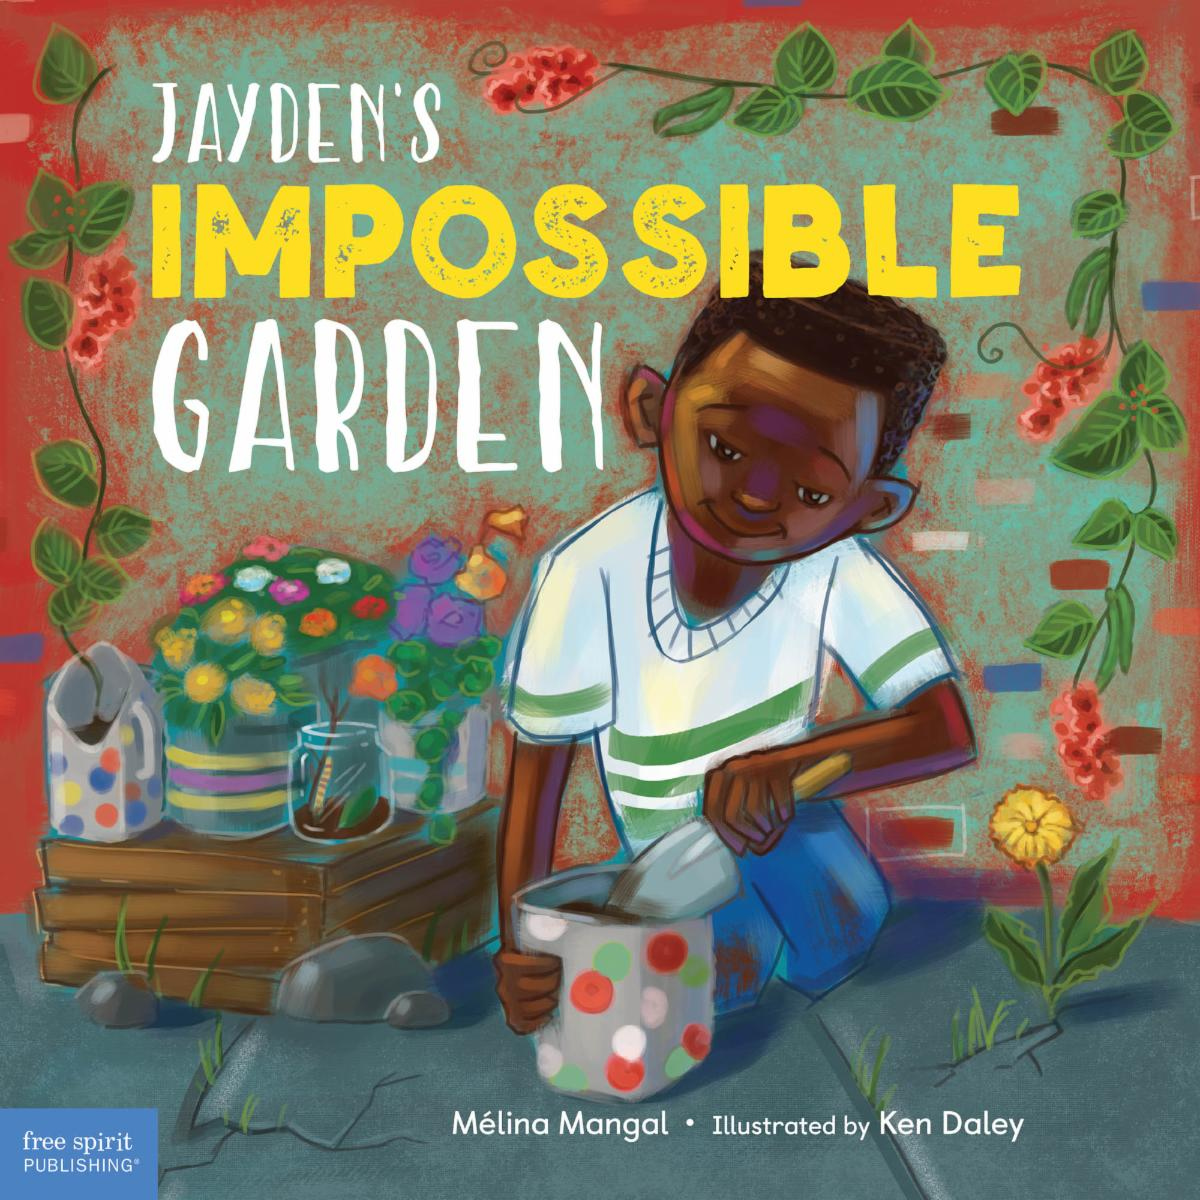 Jayden's Impossible Garden